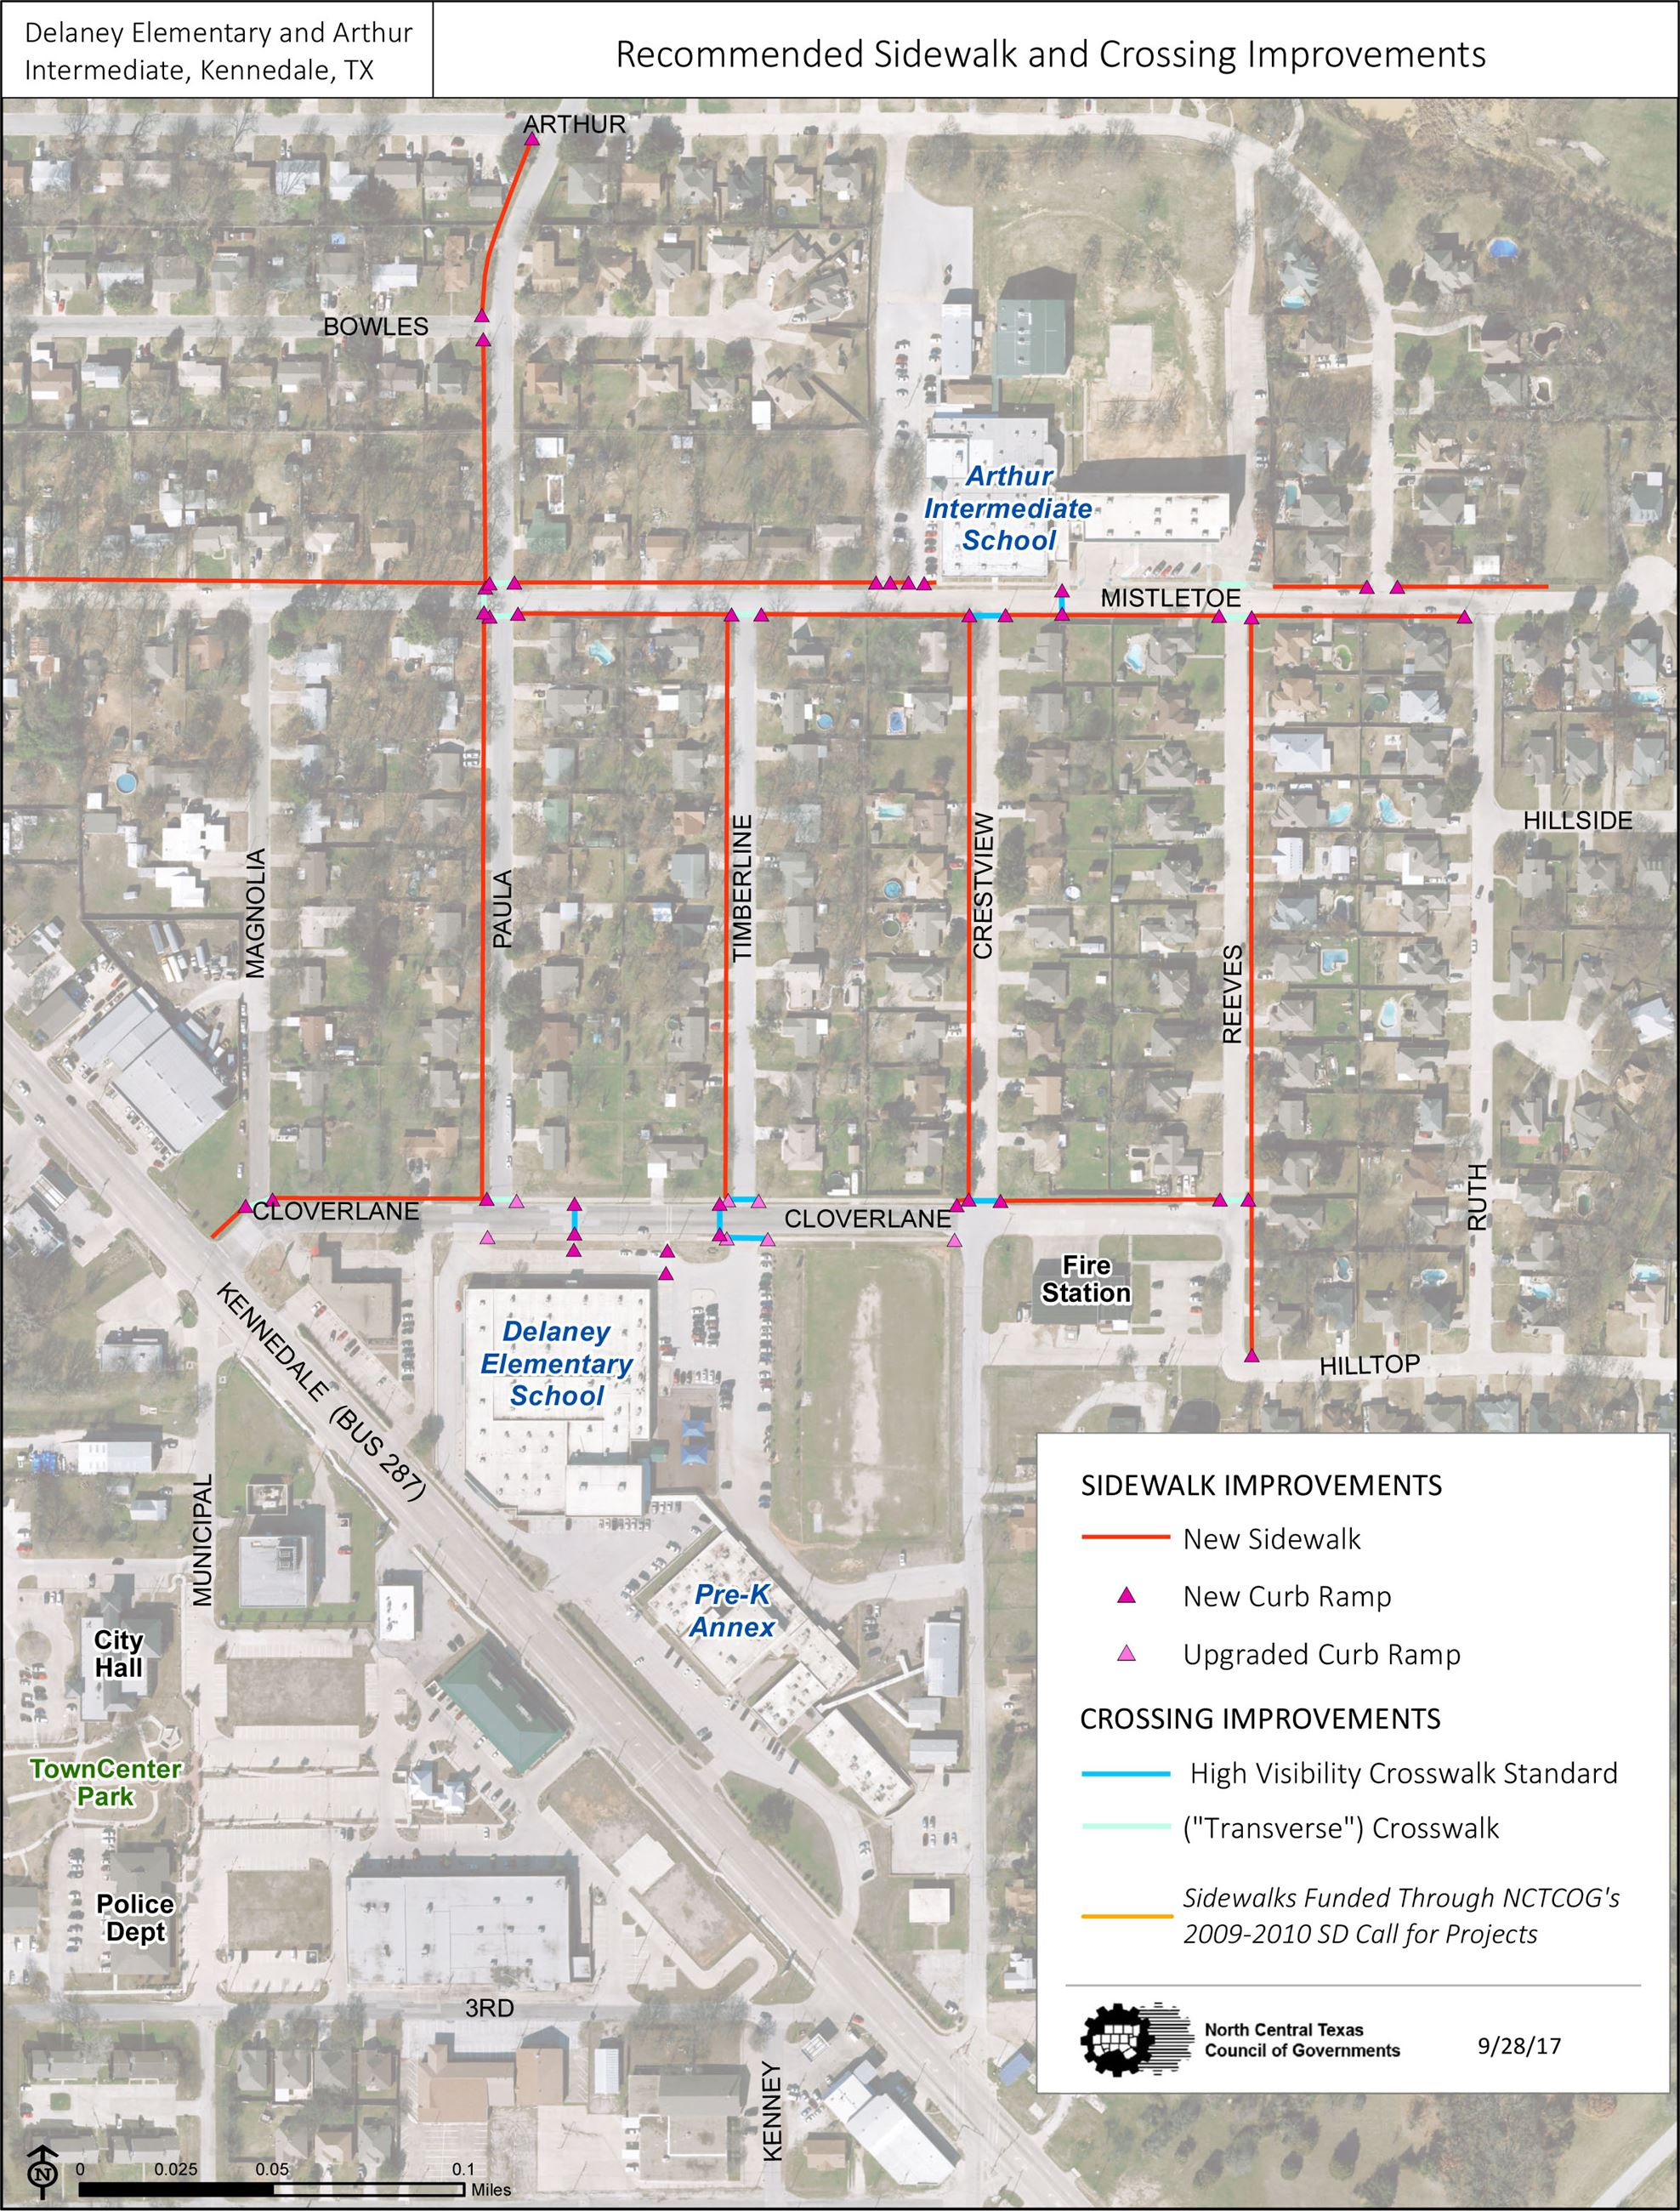 SRTS Recommended Sidewalk and Crossing Improvements